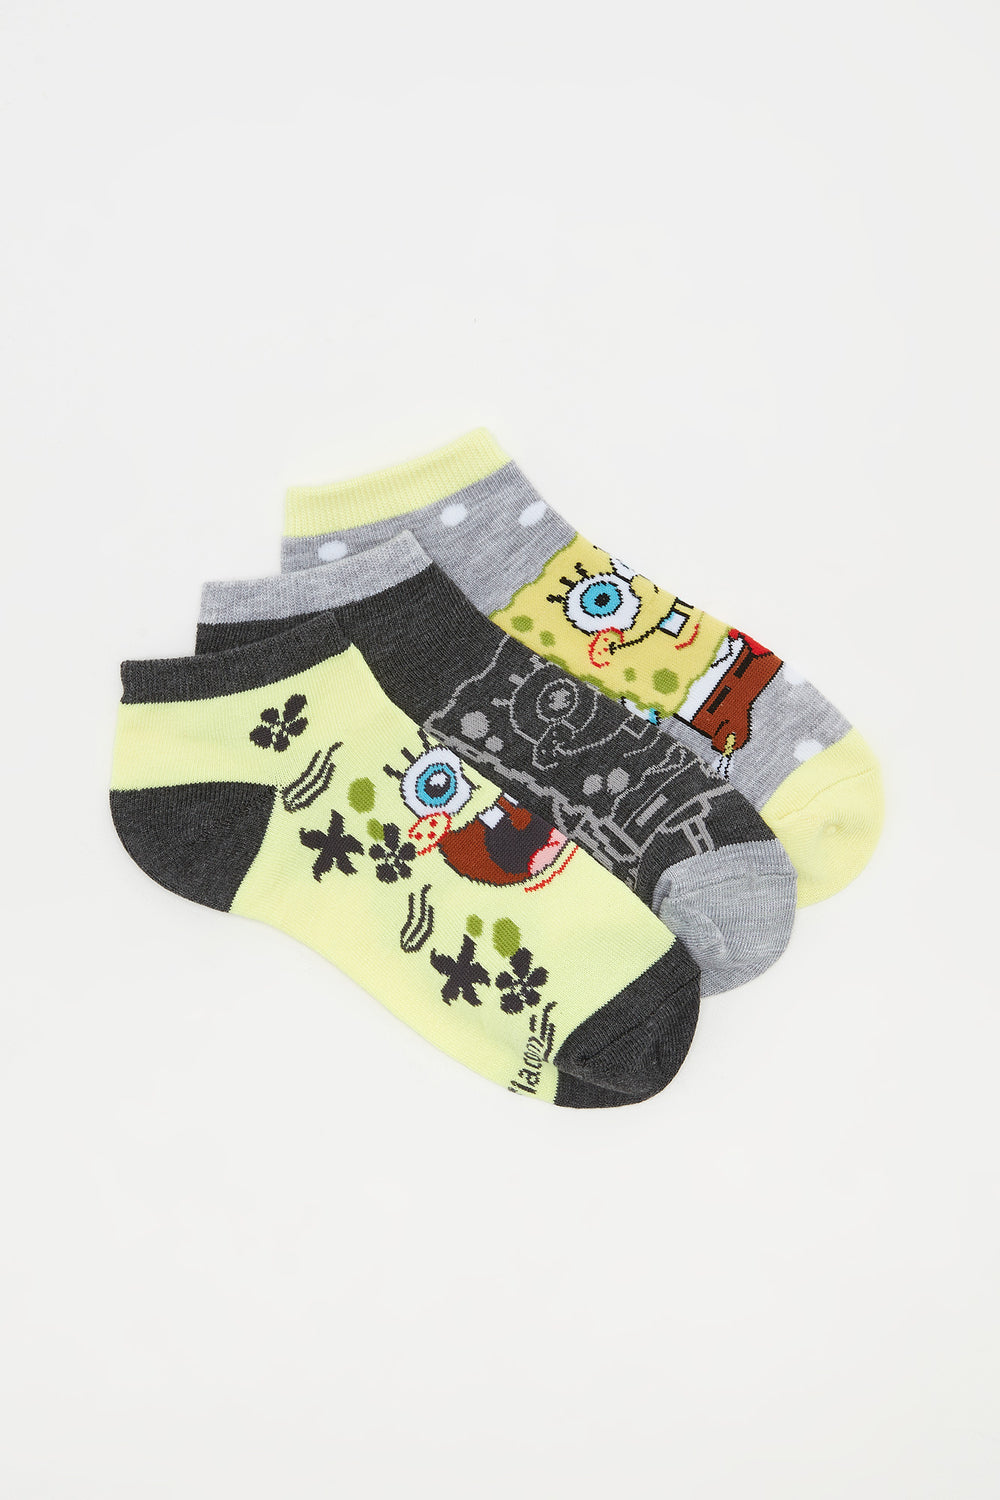 Spongebob Squarepants Ankle Socks (3 Pairs) Assorted